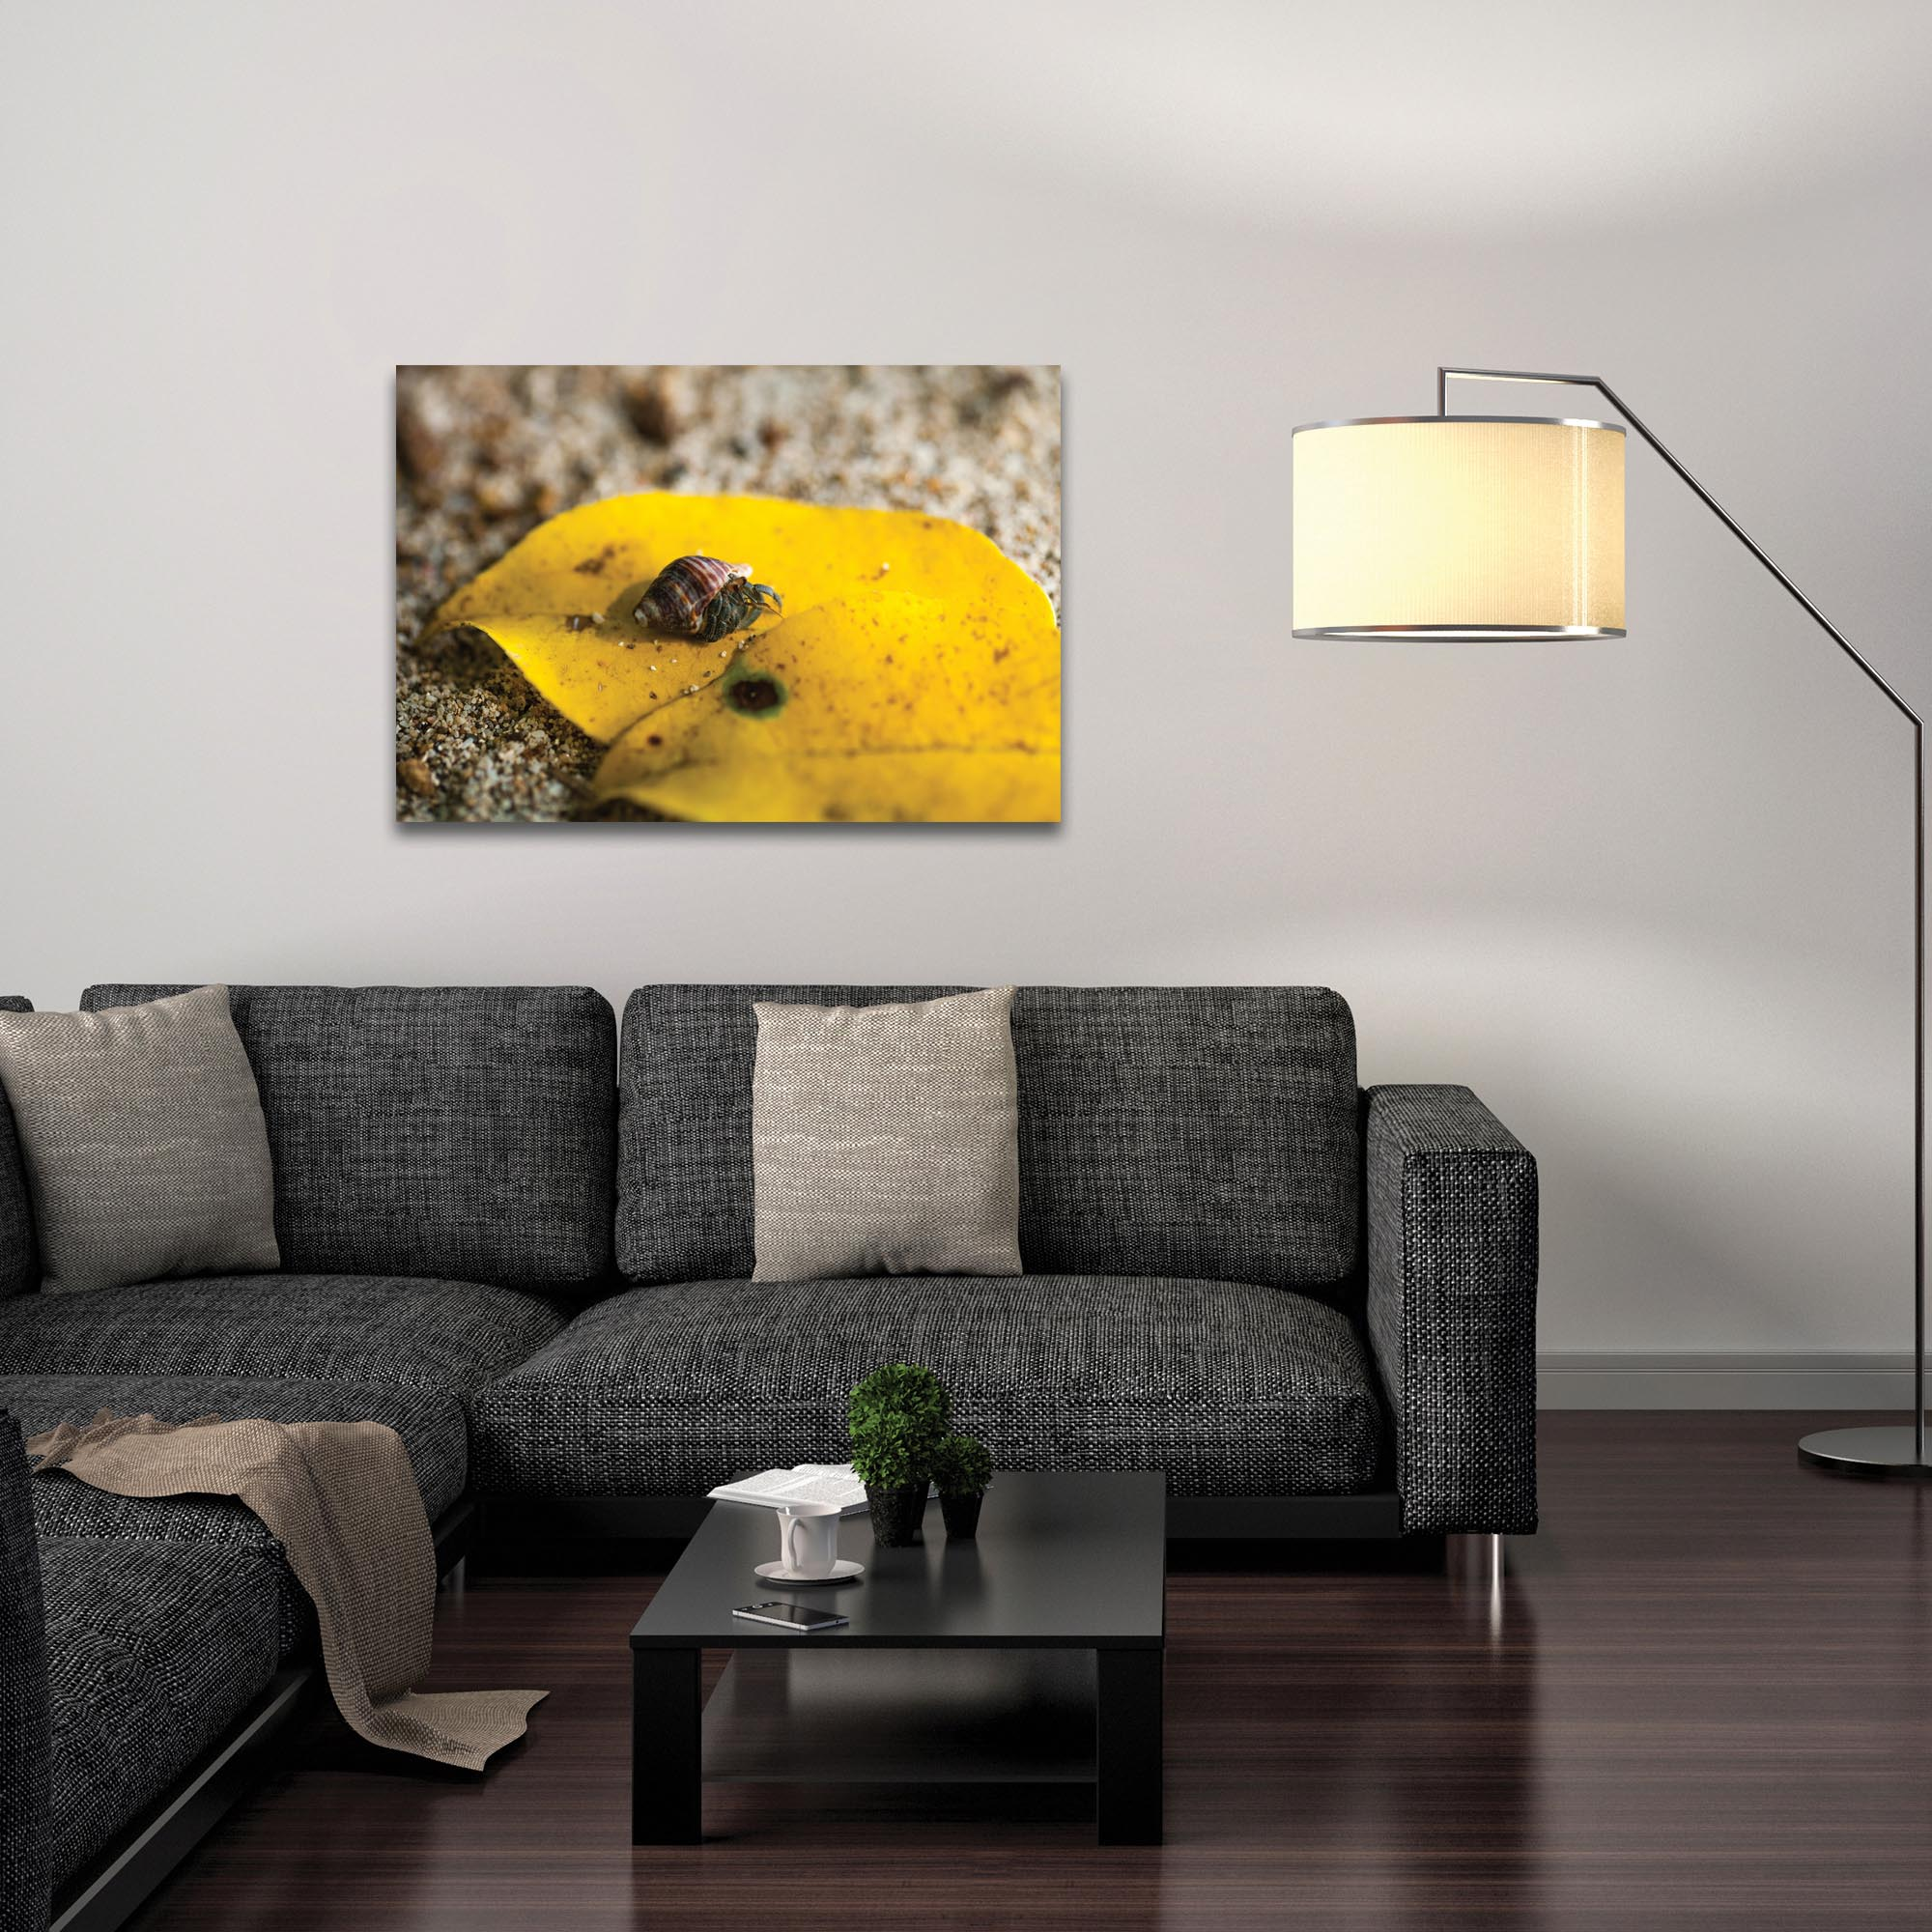 Nature Photography 'Hermit Life' - Hermit Crab Art on Metal or Plexiglass - Lifestyle View